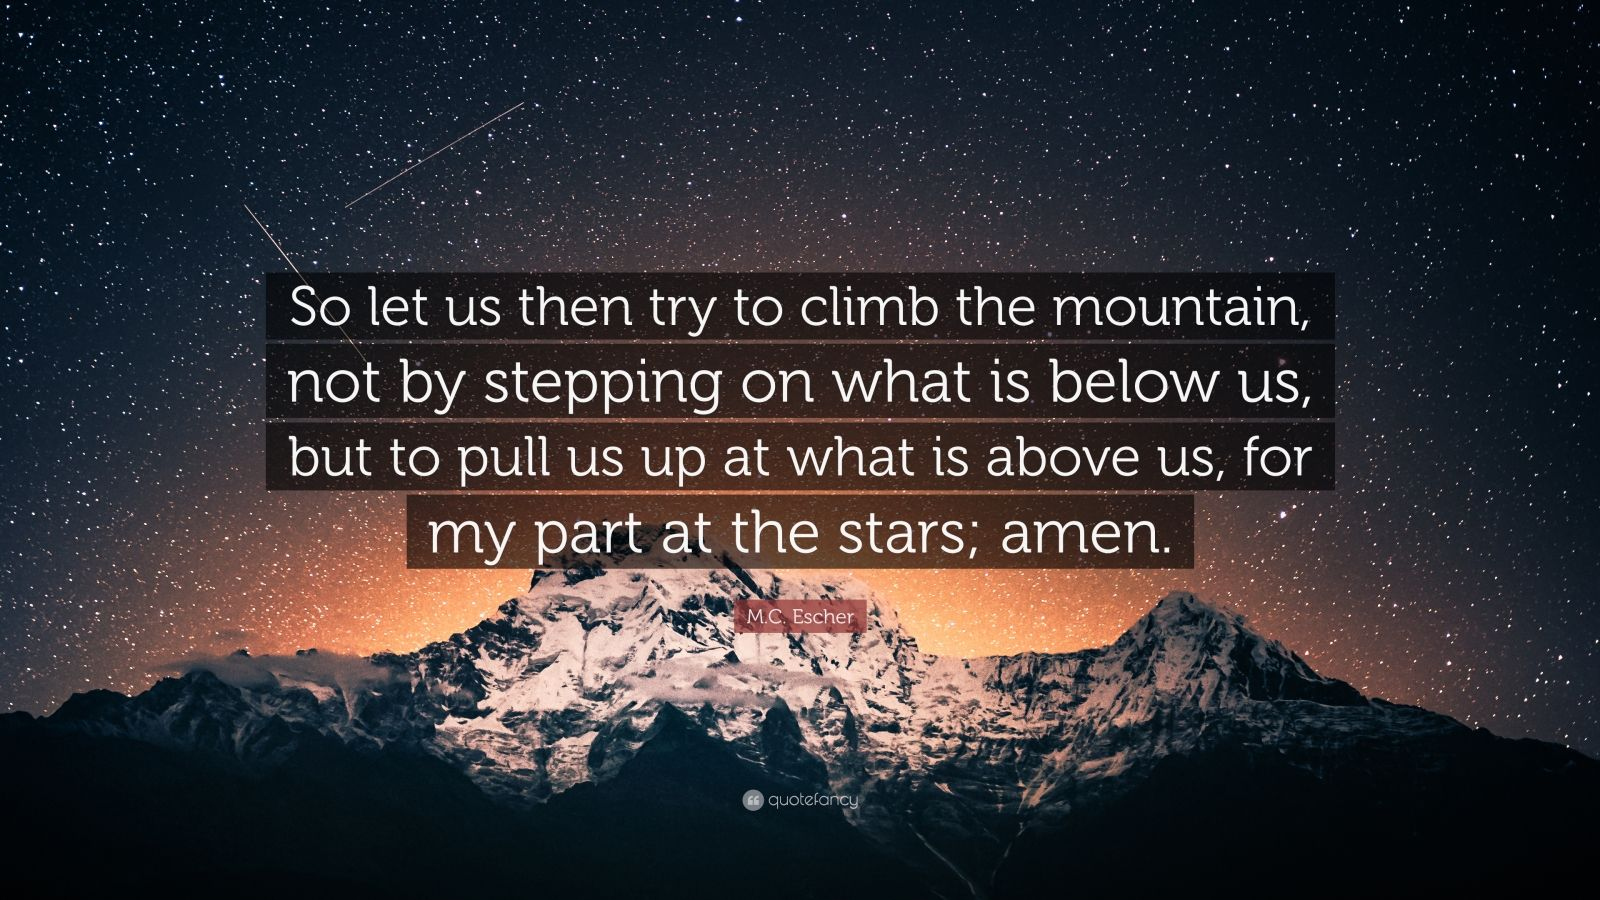 """M.C. Escher Quote: """"So let us then try to climb the mountain, not by stepping on what is below us, but to pull us up at what is above us, for my part at the stars; amen."""""""